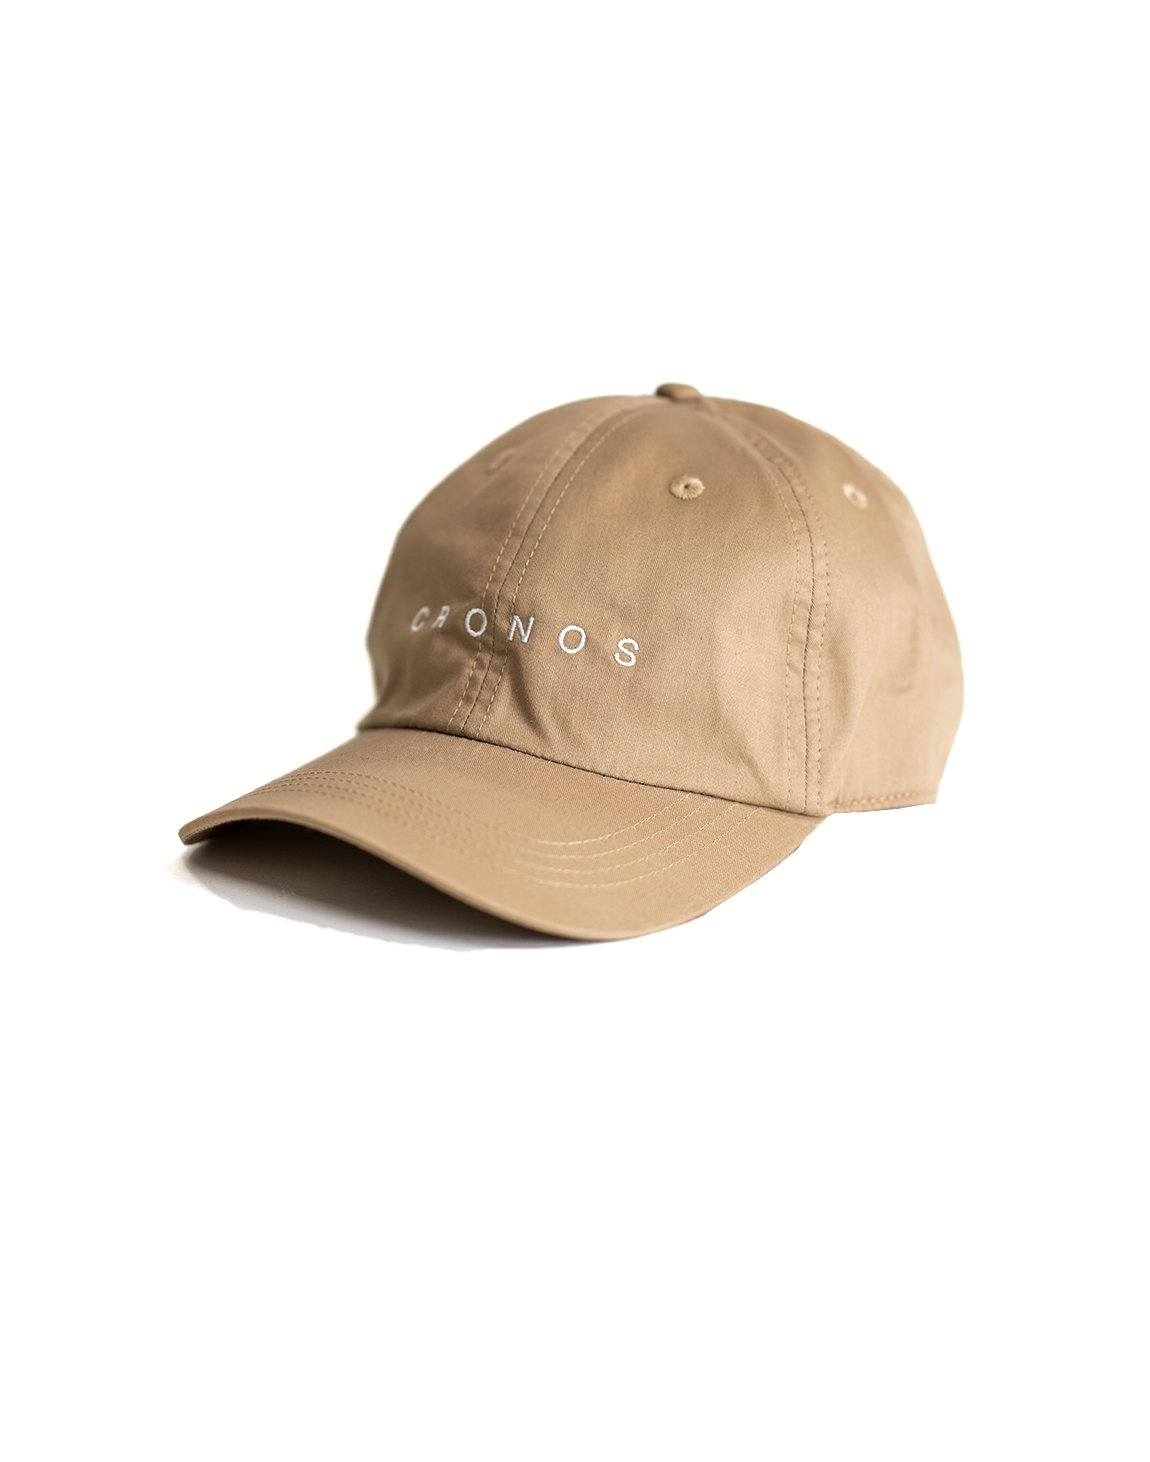 <img class='new_mark_img1' src='https://img.shop-pro.jp/img/new/icons1.gif' style='border:none;display:inline;margin:0px;padding:0px;width:auto;' />CRONOS LOGO CAP 【BEIGE】